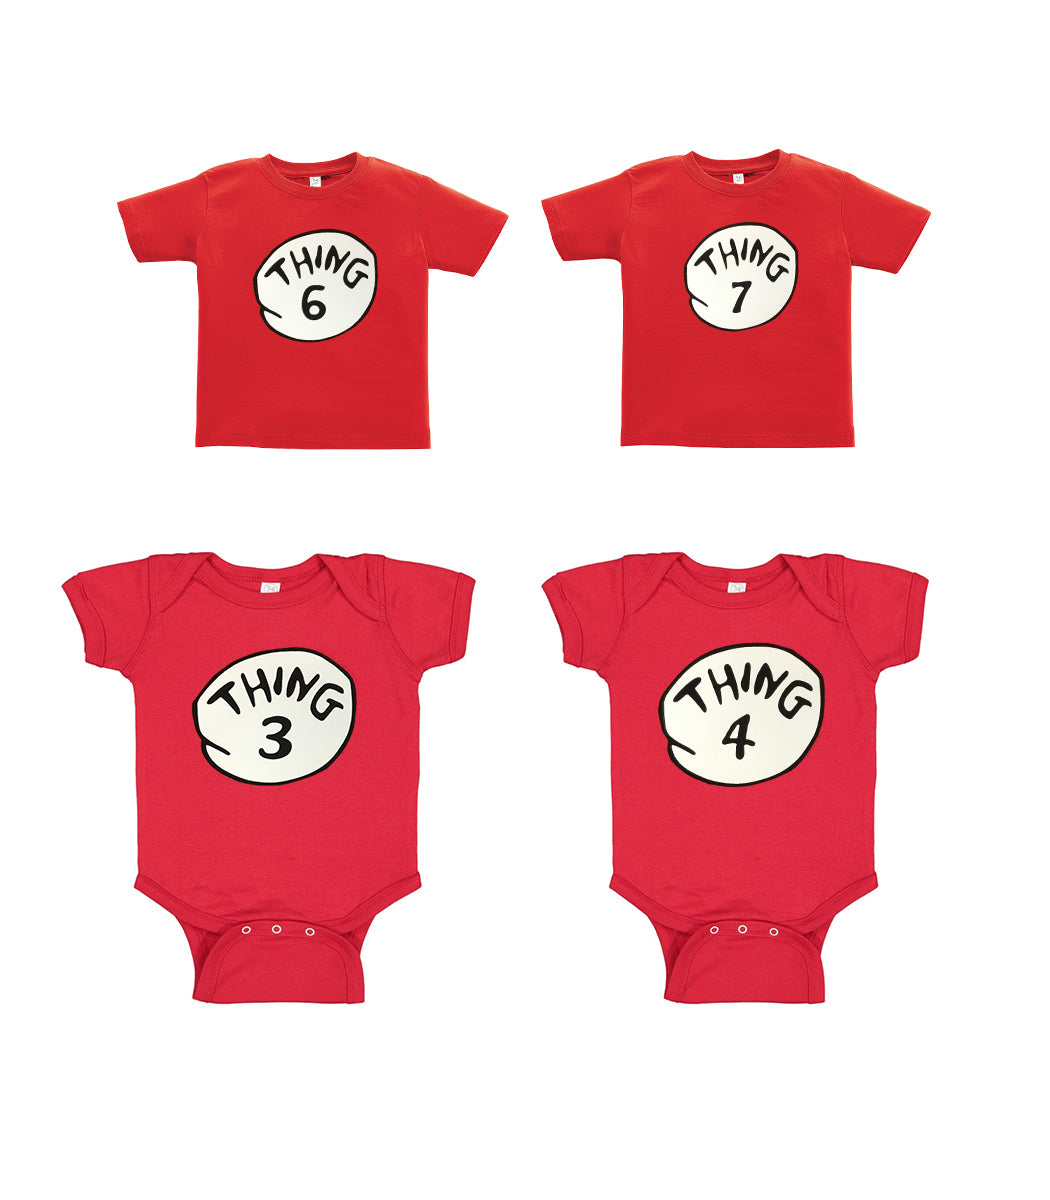 Thing 1 Thing 2 Funny Baby Onesie Or T-Shirt New Born - 24 Month